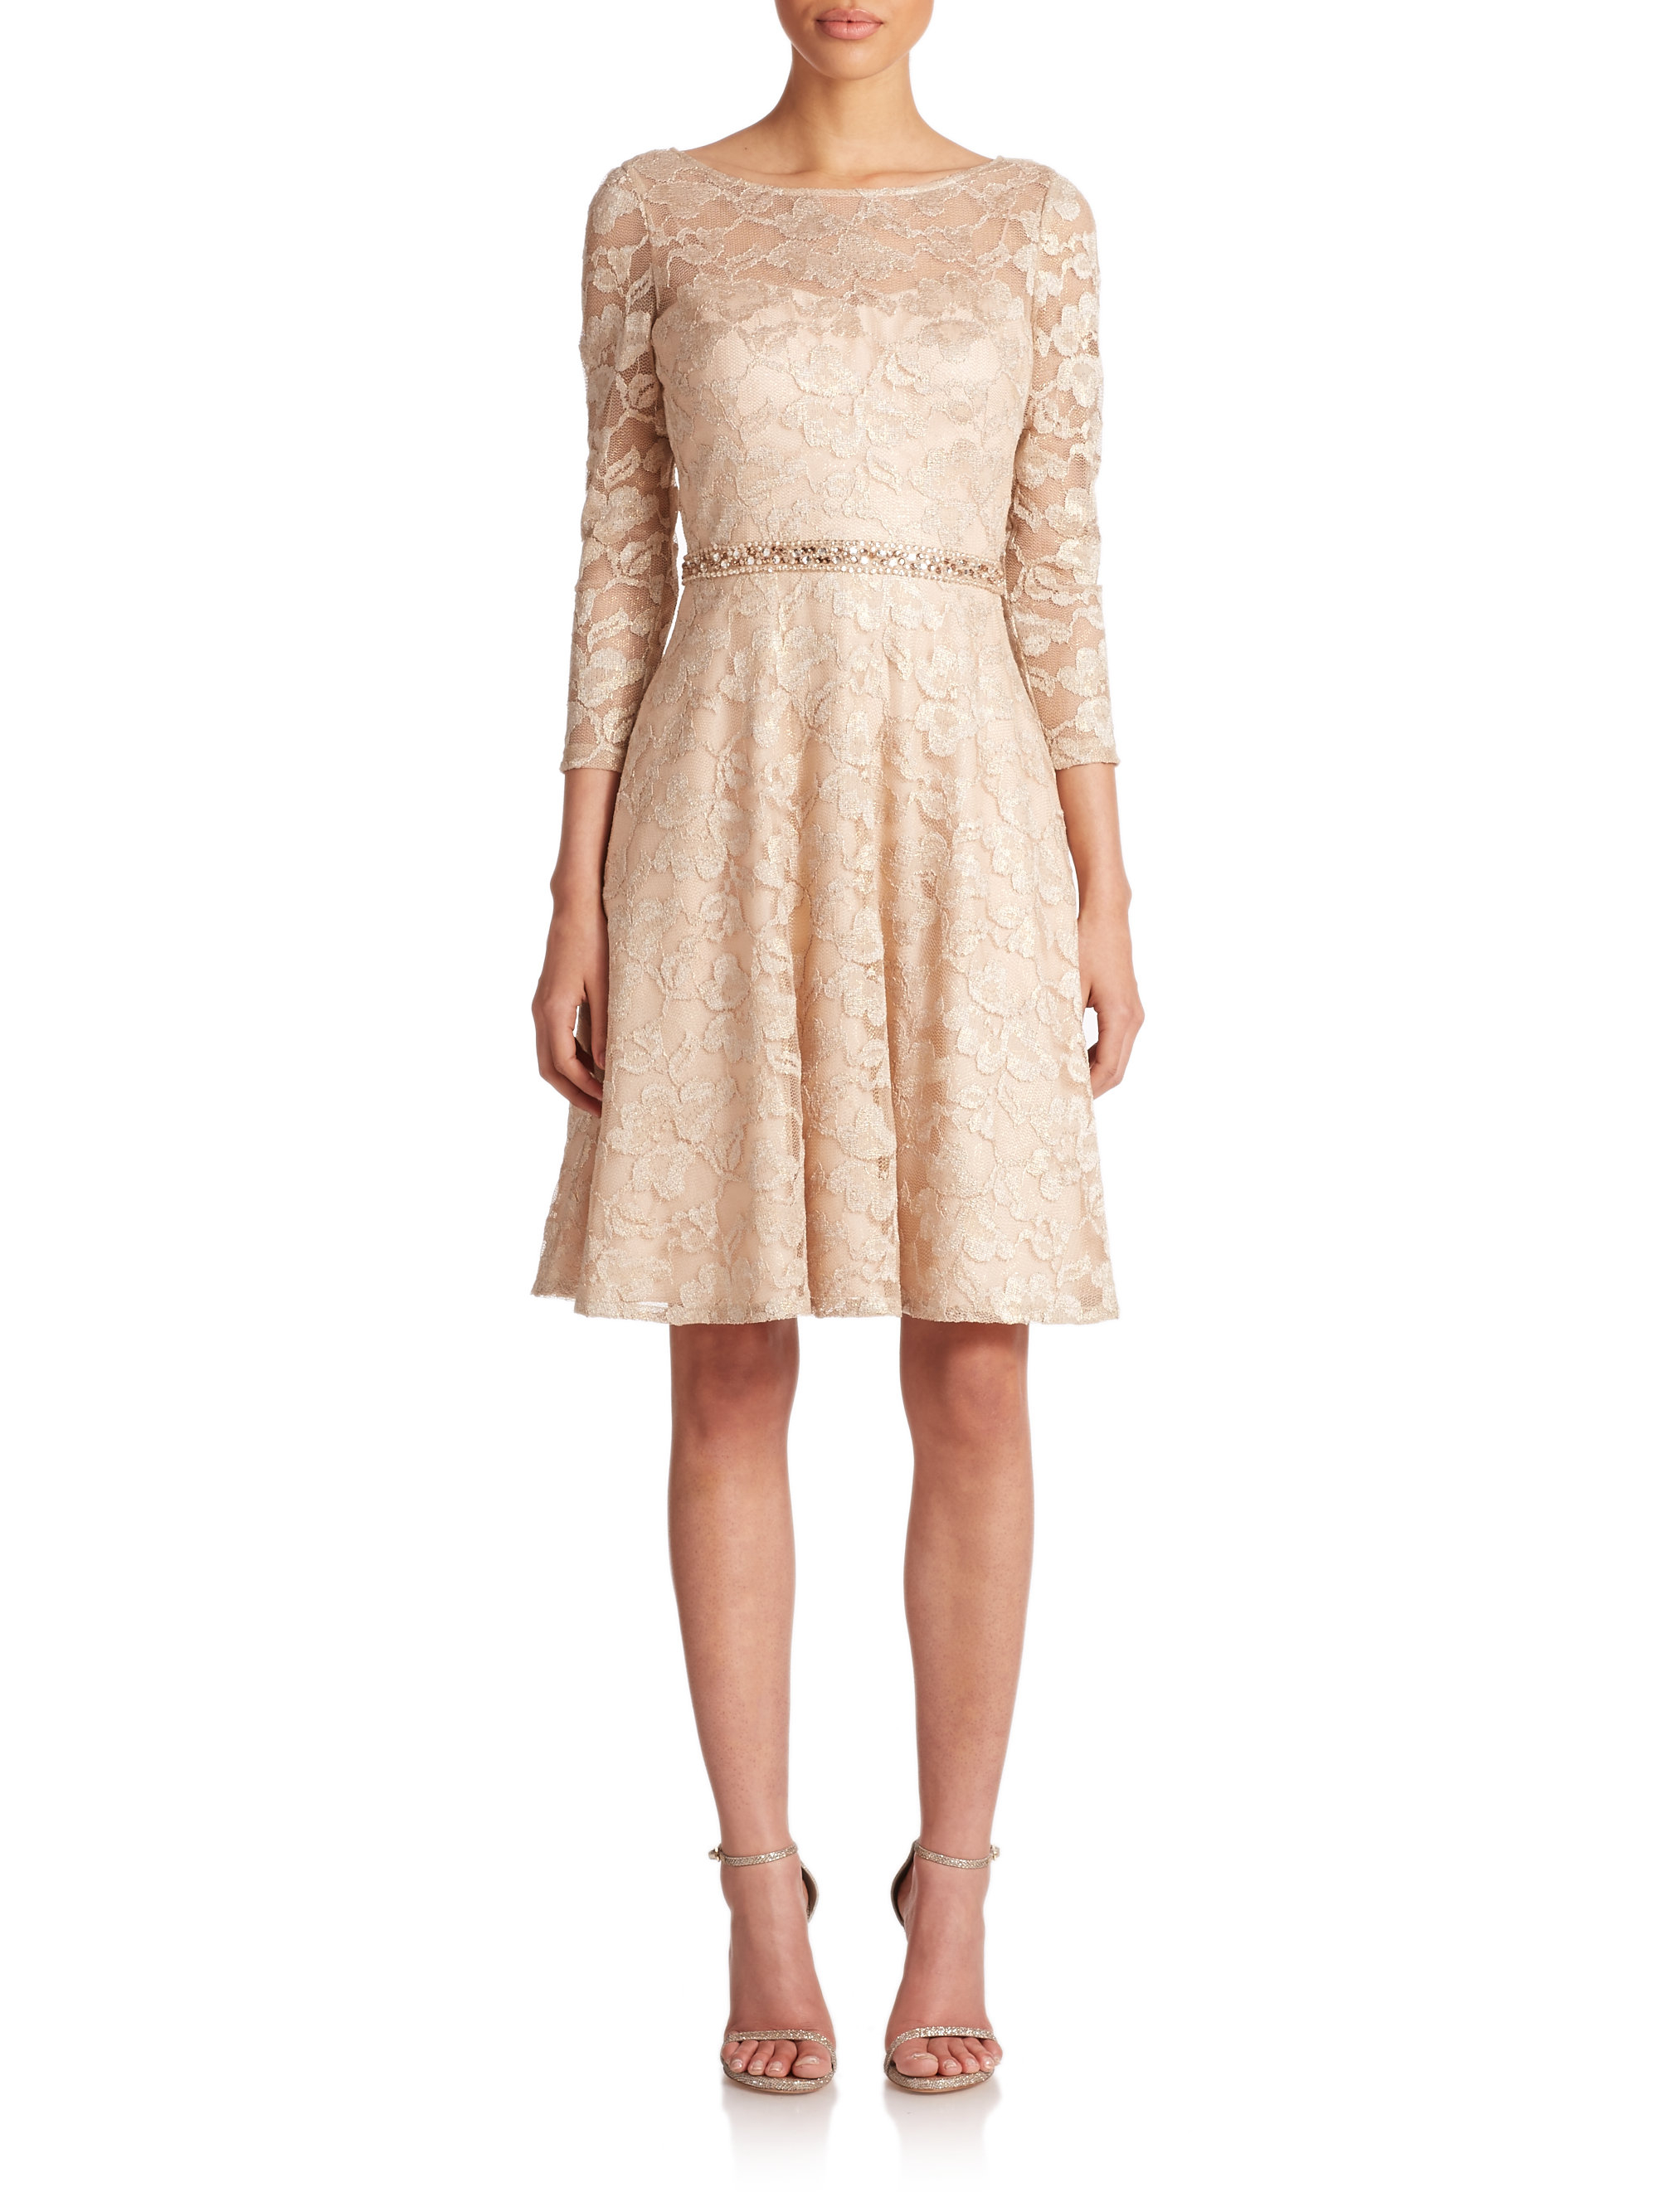 Lyst Aidan Mattox Beaded Metallic Lace Dress In Metallic